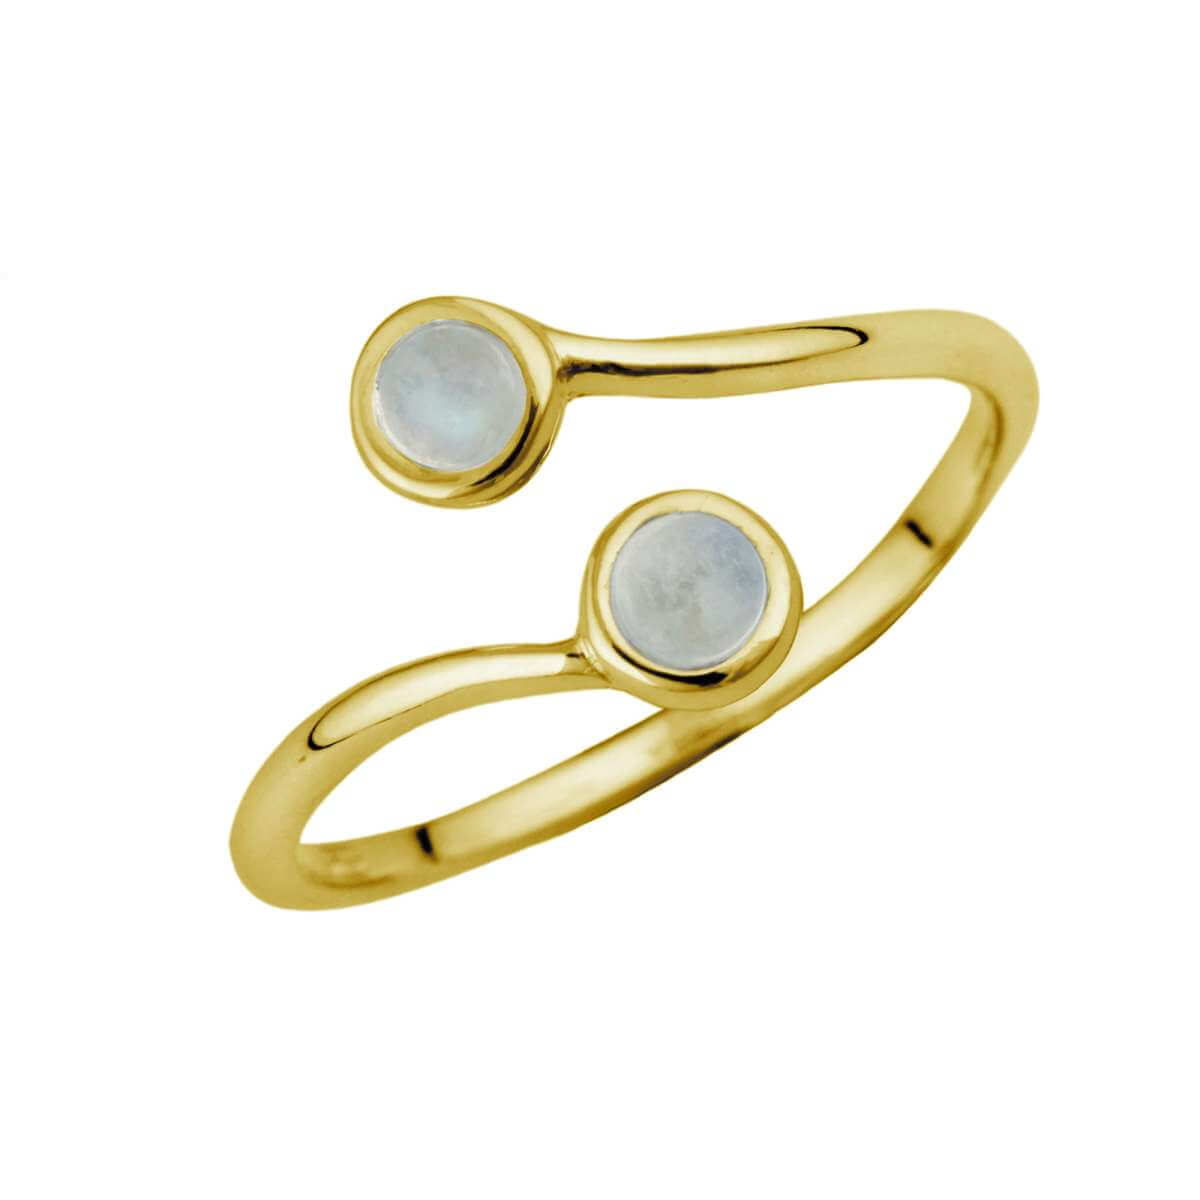 Gold Plated Sterling Silver & Moonstone Adjustable Ring